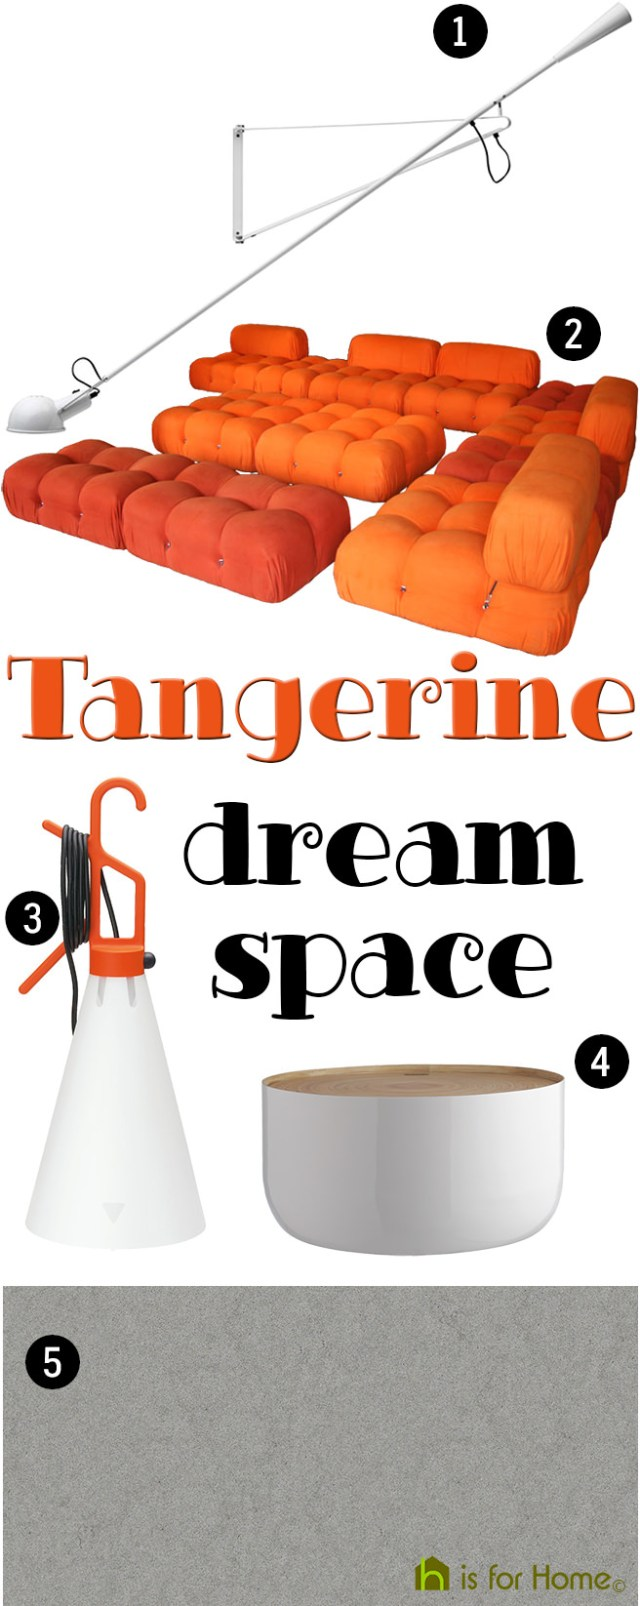 Get their look: Tangerine dream space | H is for Home